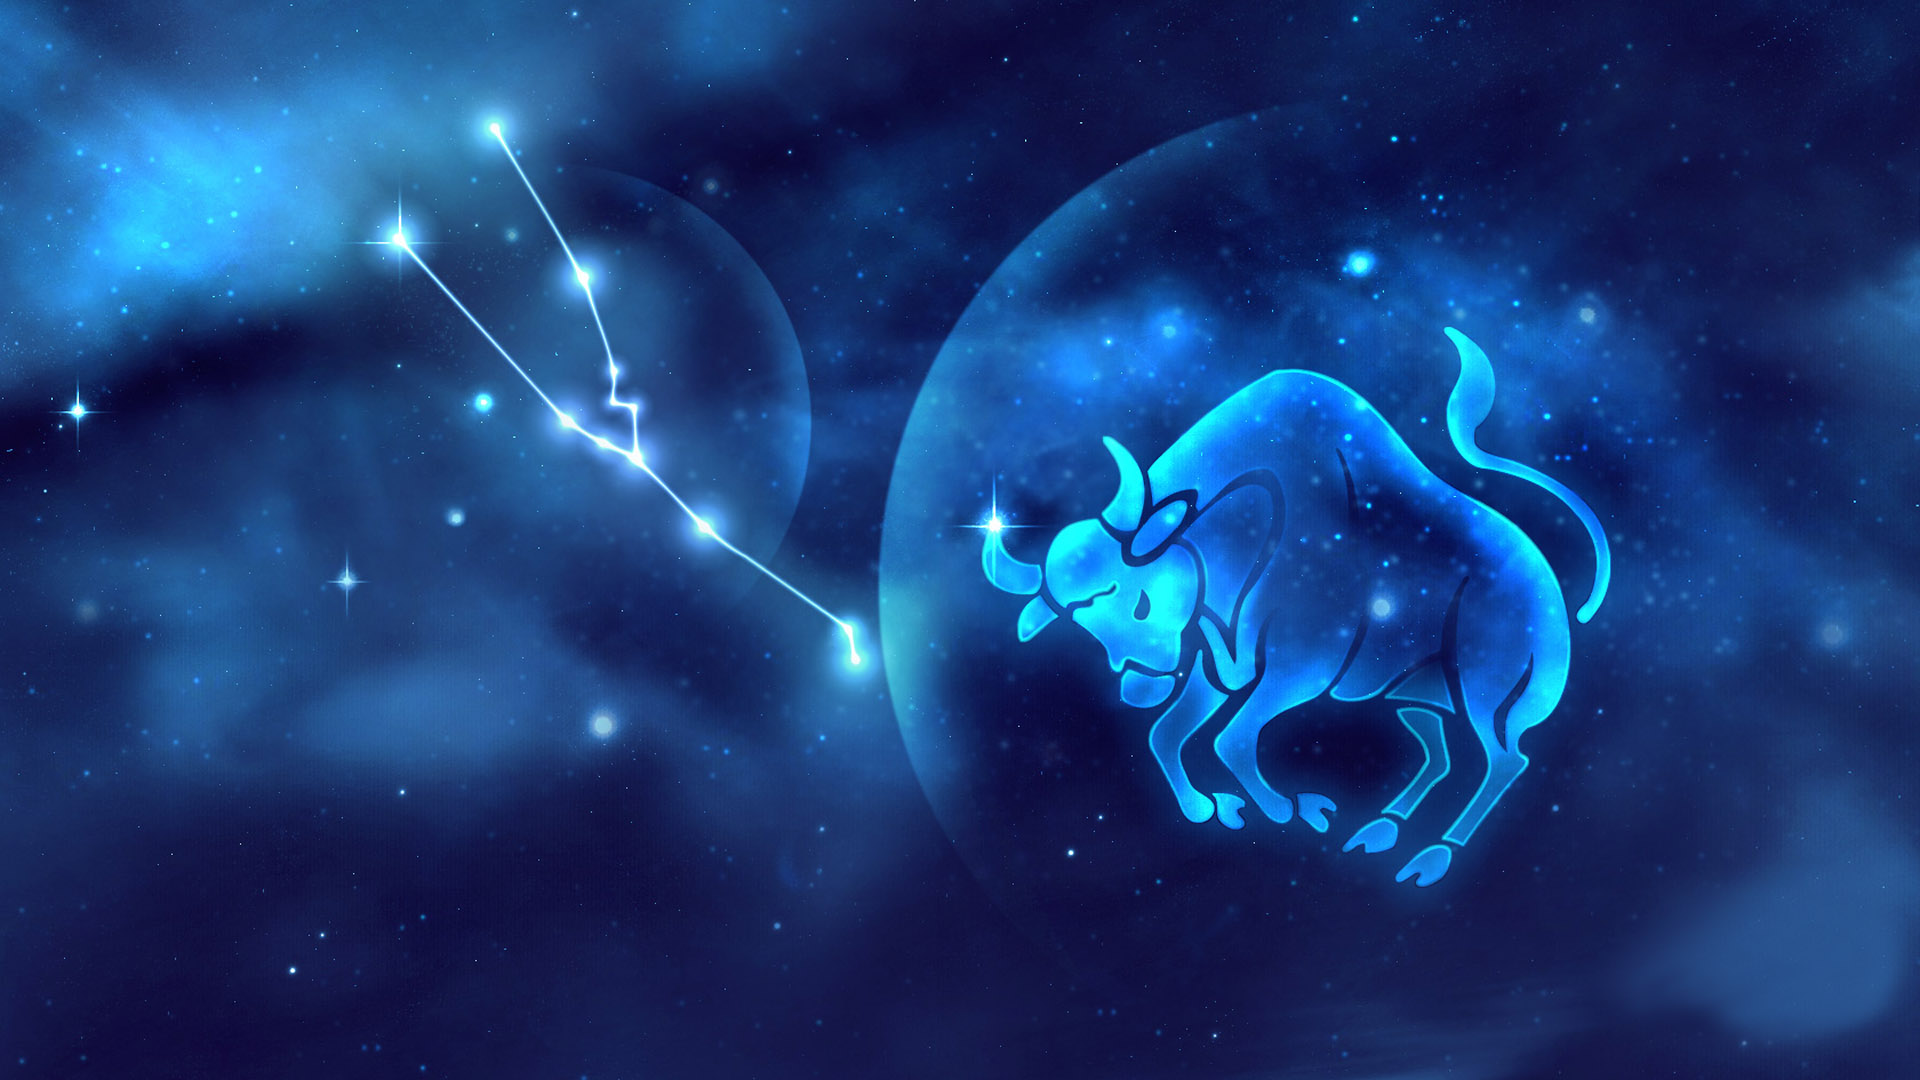 zodiac wallpapers free download